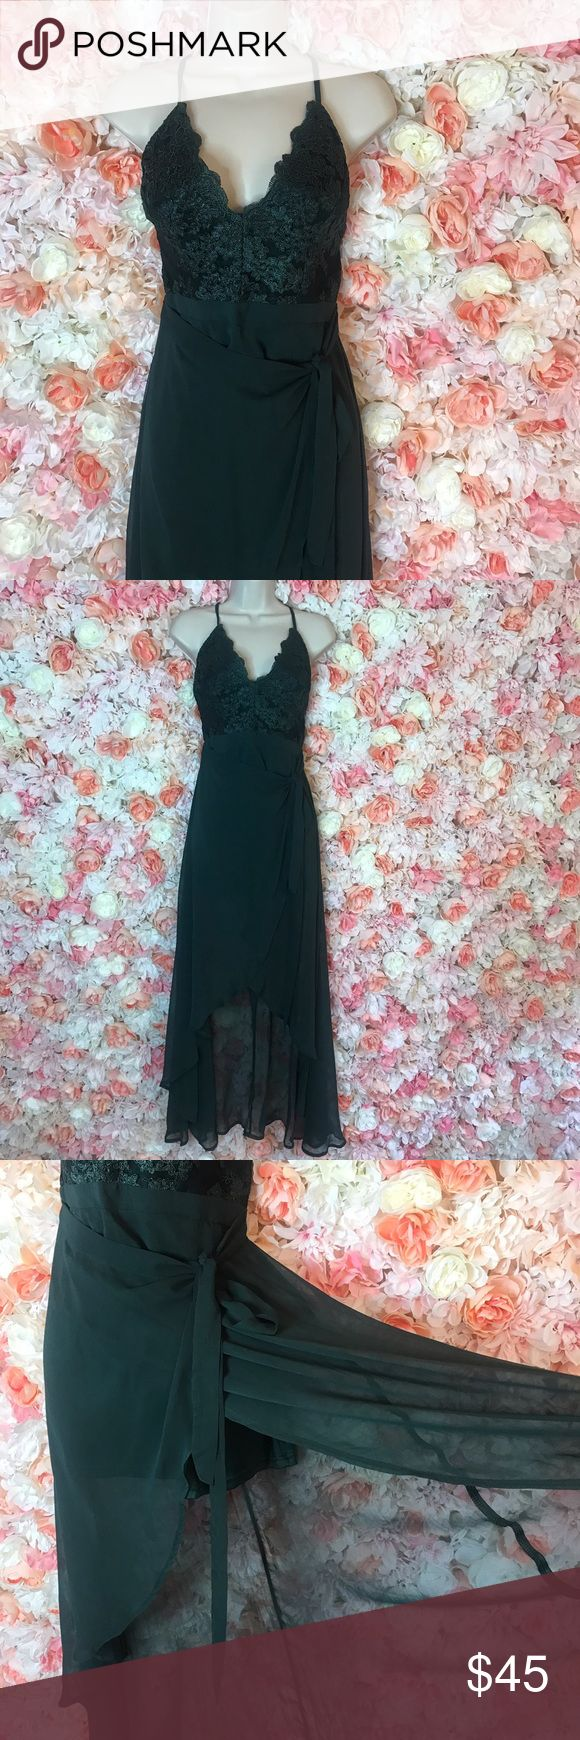 Green hi low maxi dress Green hi low maxi dress with double lined skirt. Sheer at the end. This dress is very romantic and beautiful on. Dresses High Low